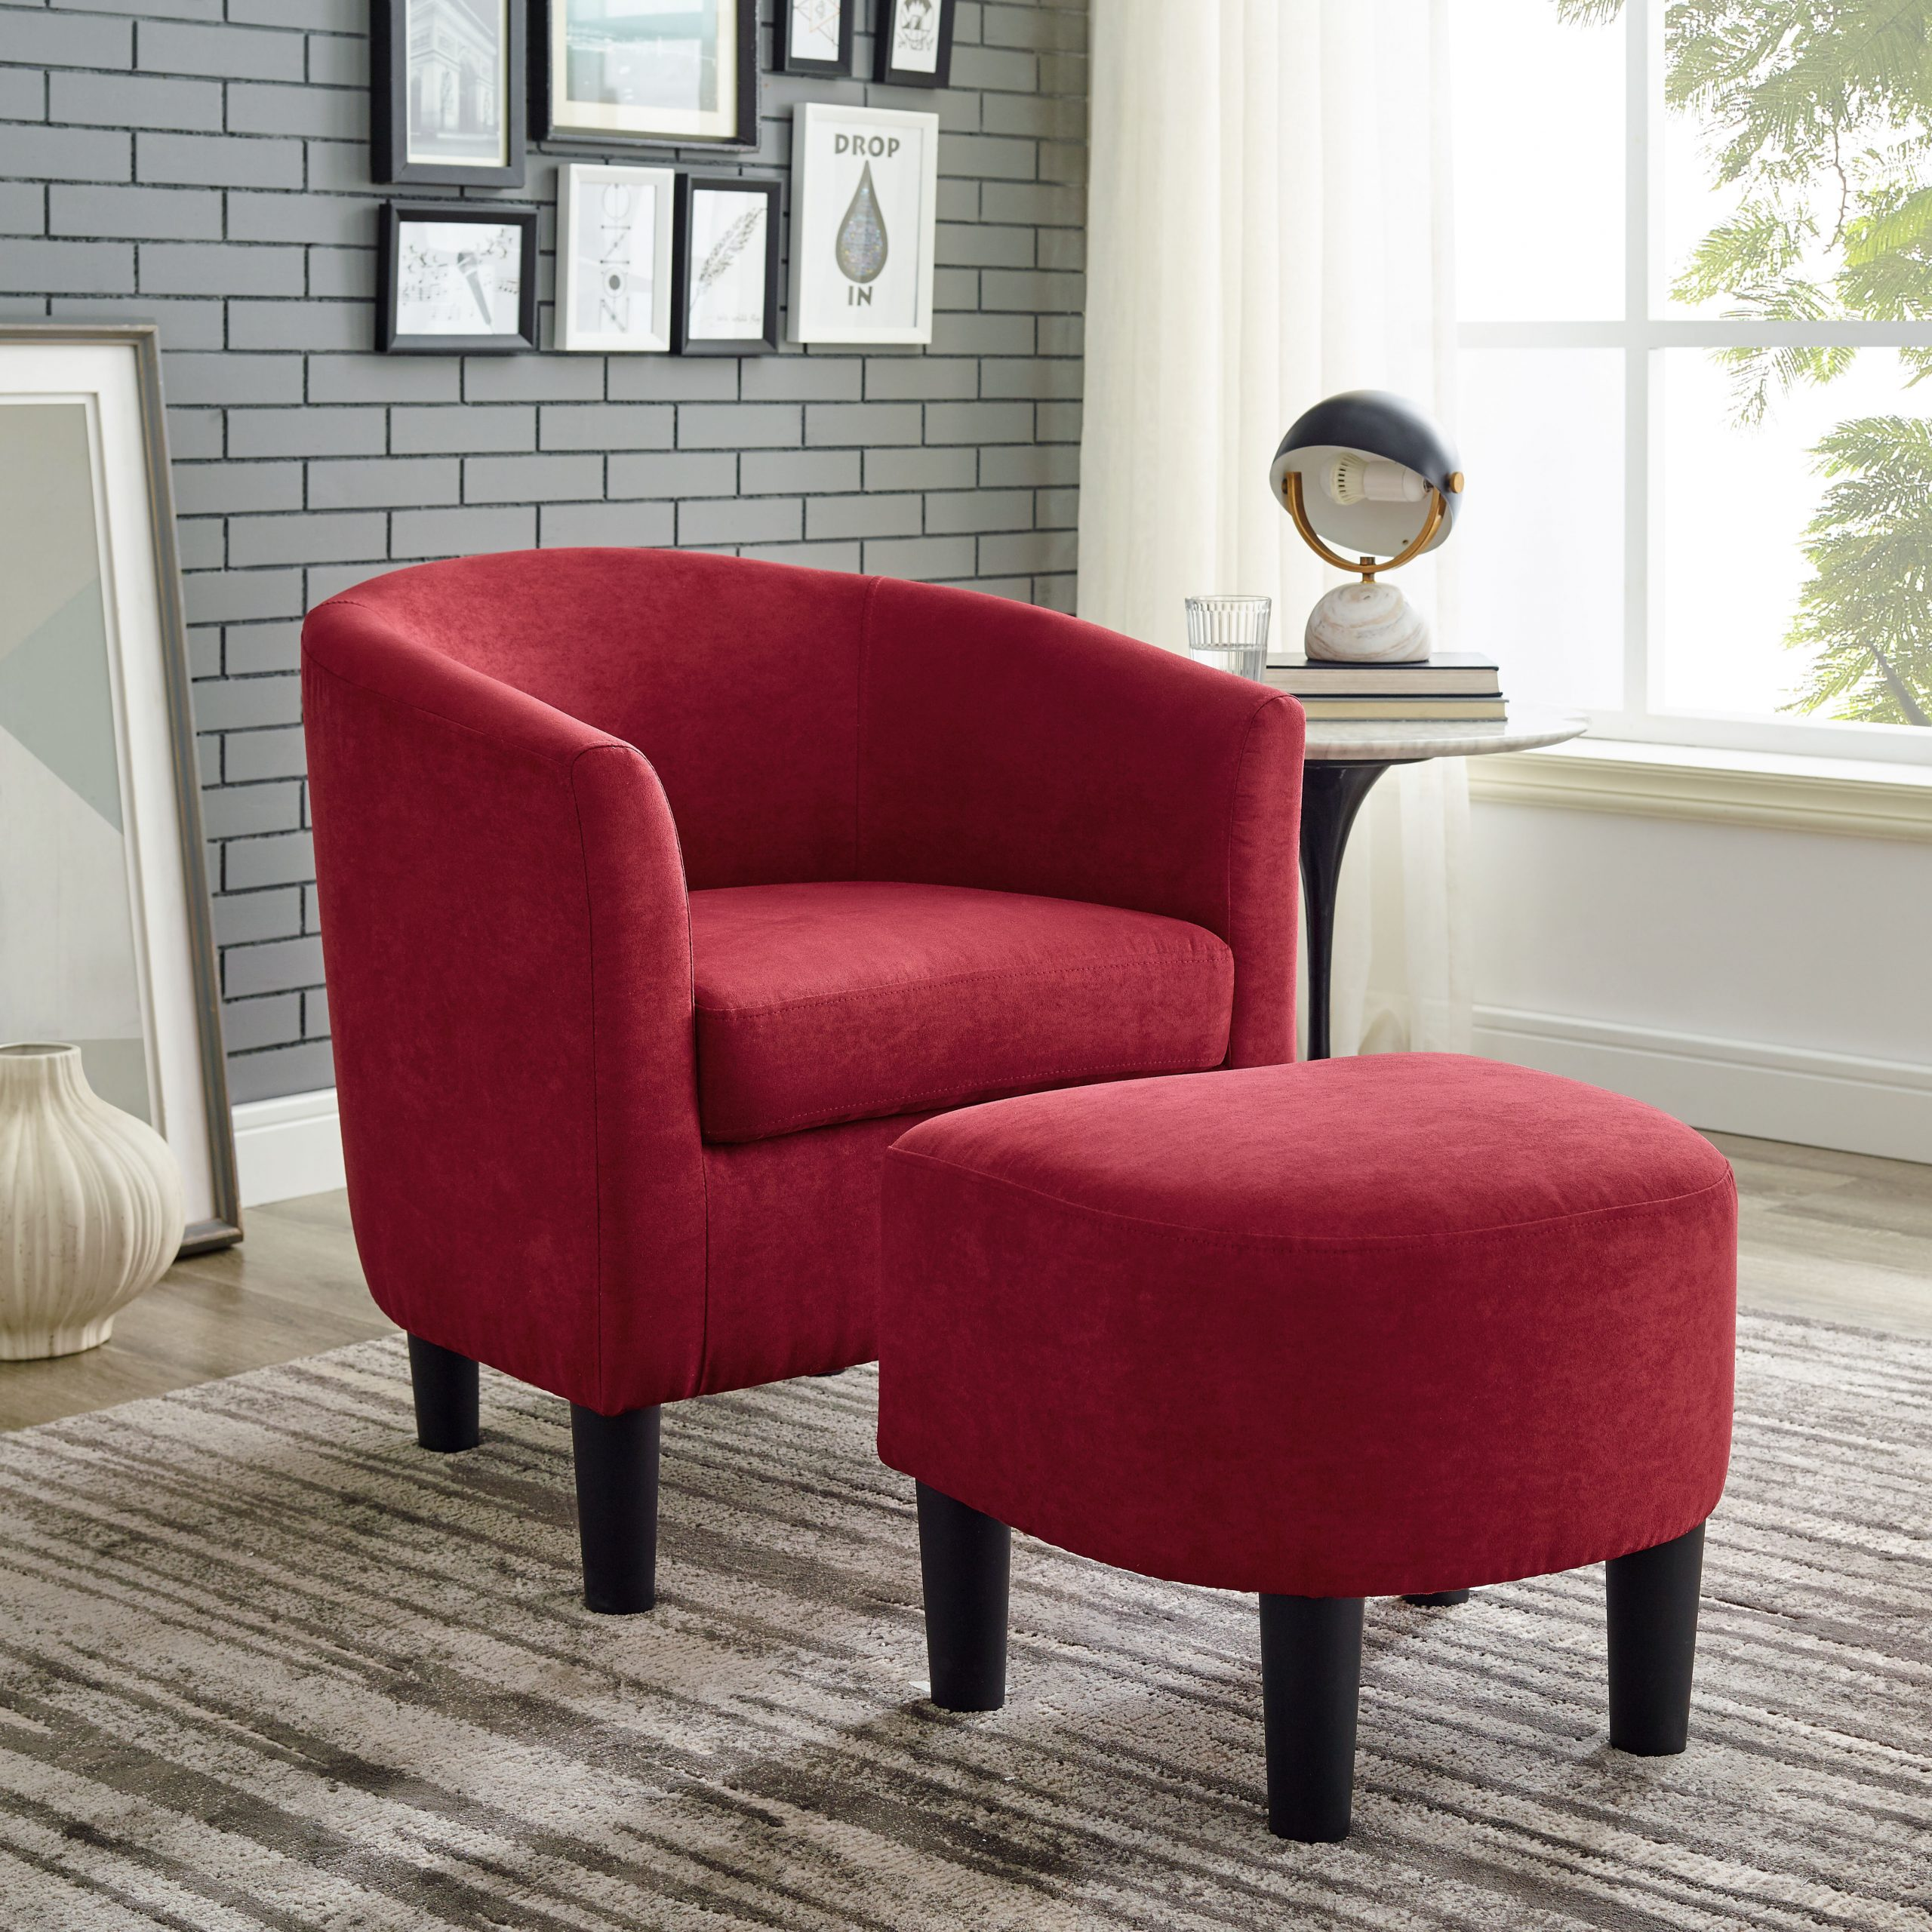 Beige & Red Accent Chairs You'Ll Love In 2021 | Wayfair Within Chaithra Barrel Chair And Ottoman Sets (View 3 of 15)